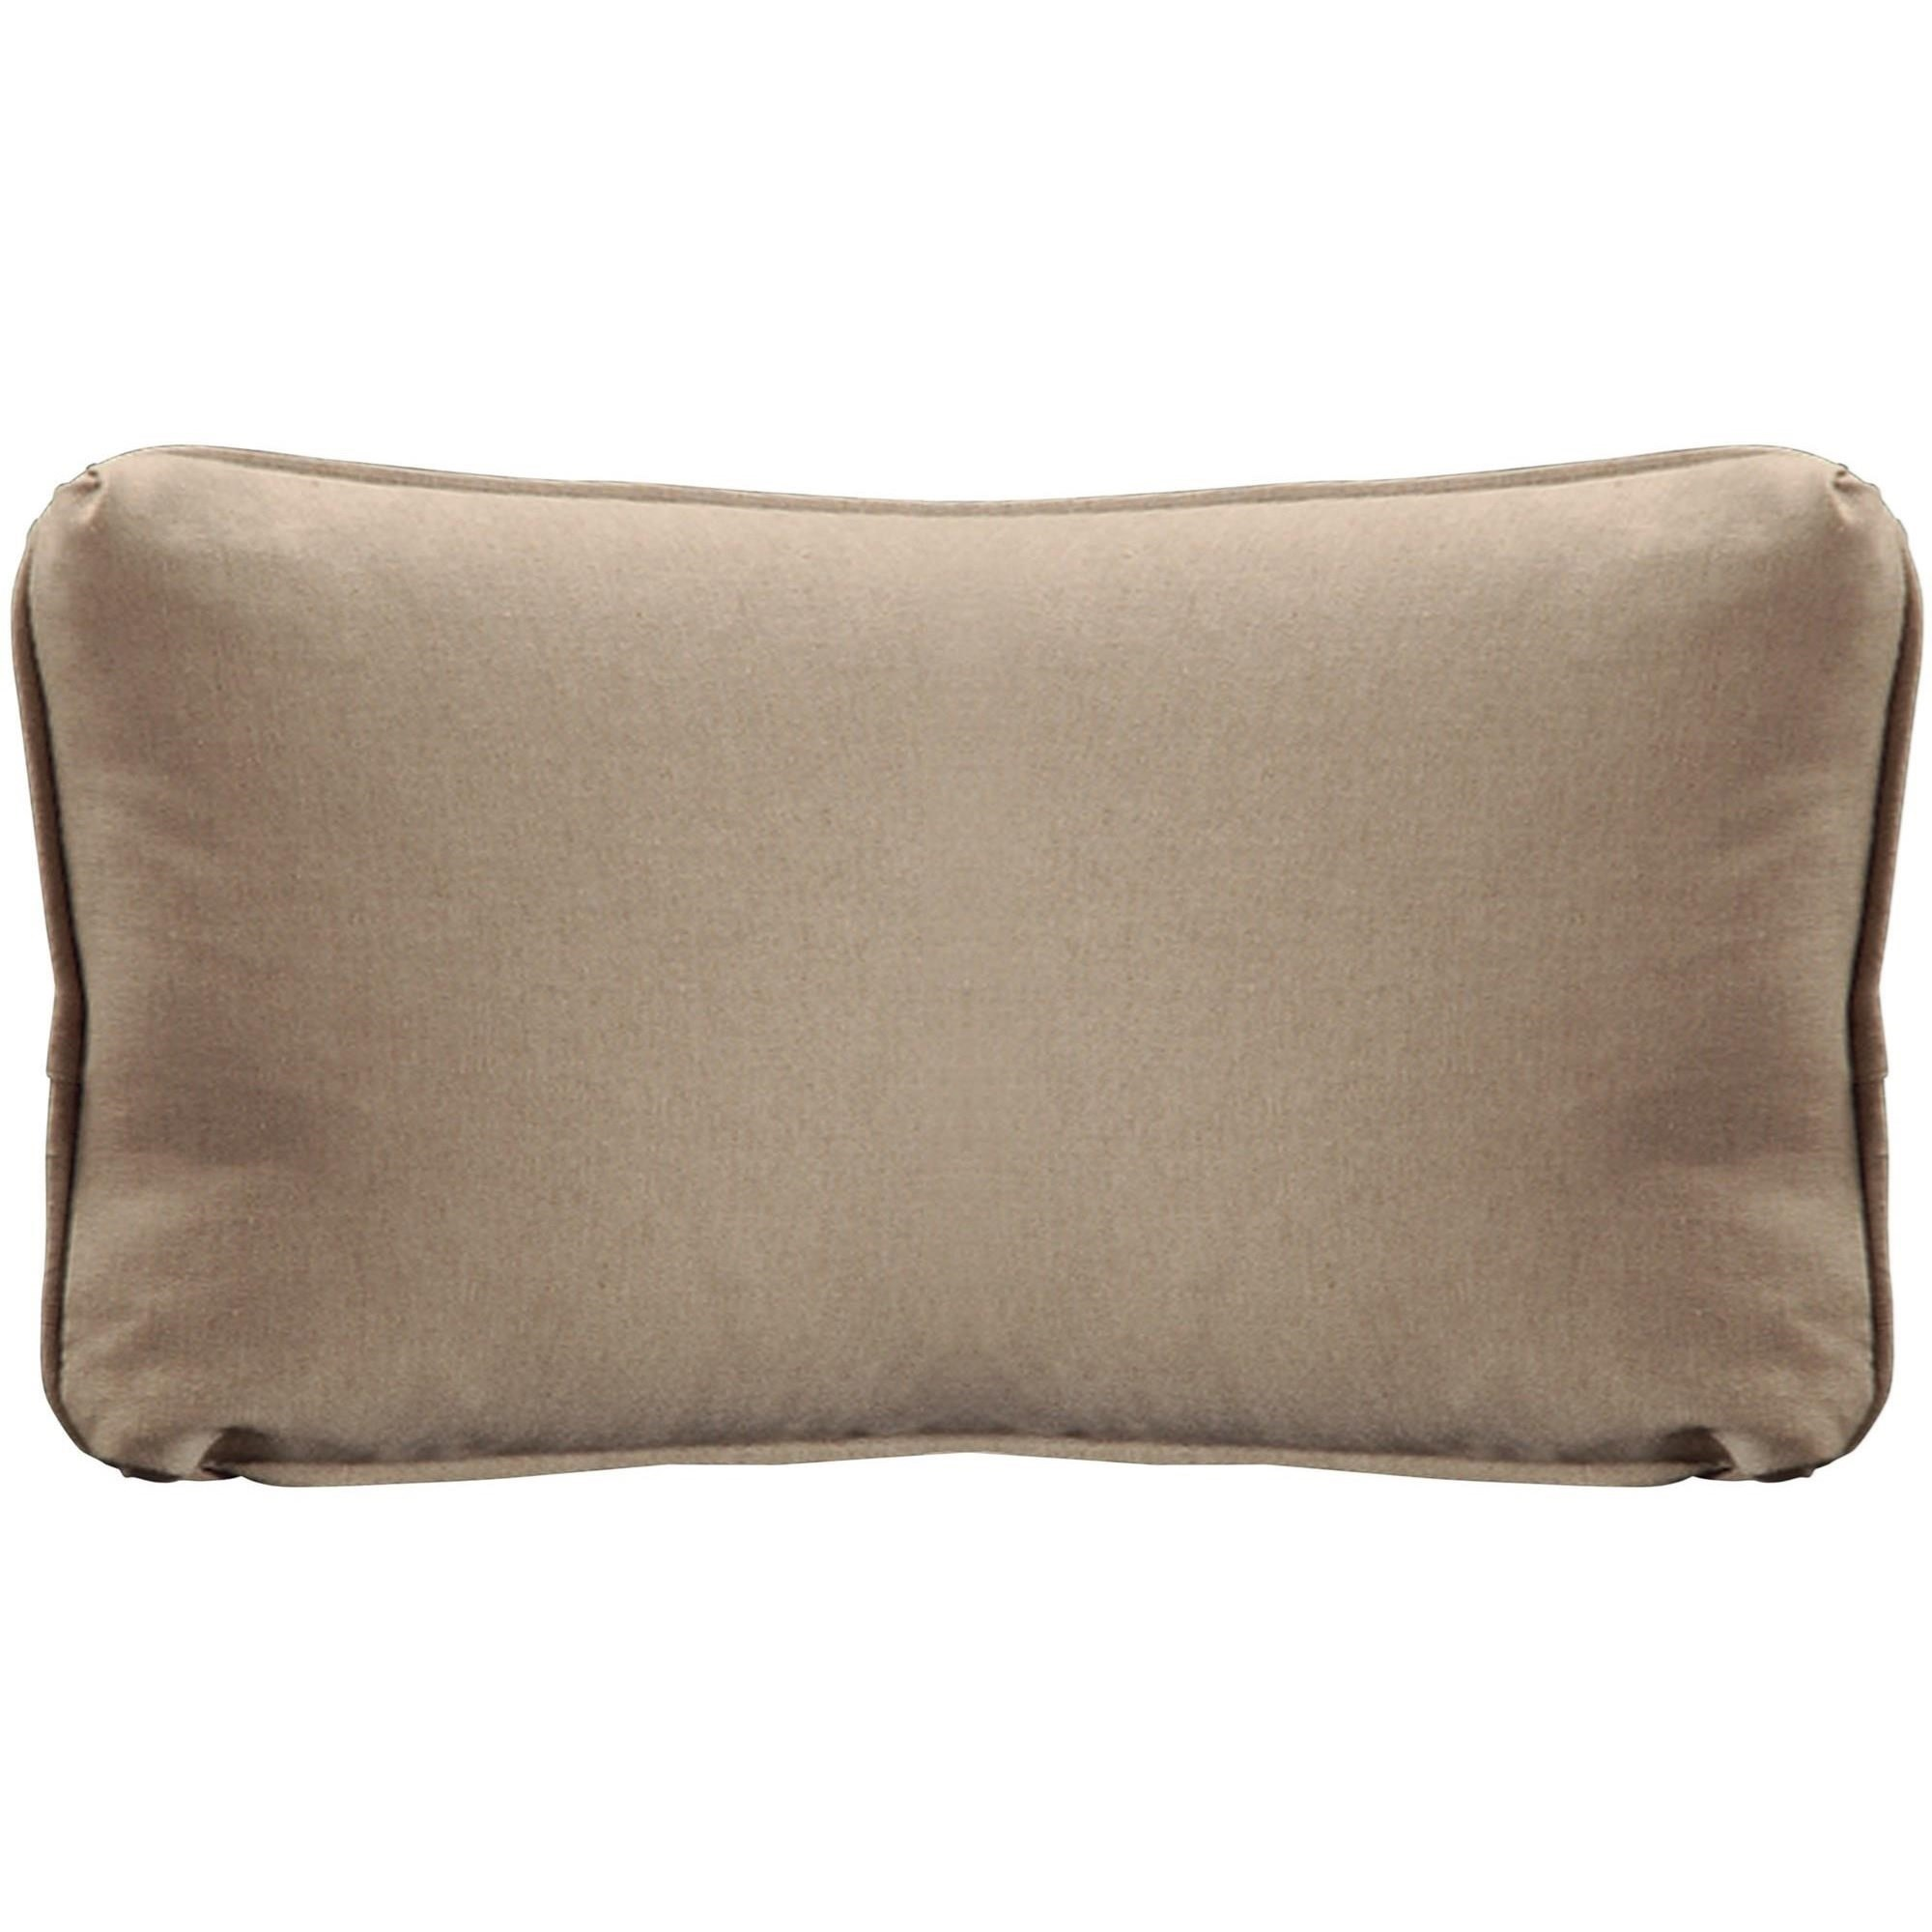 """Throw Pillows Knife Edge Kidney w/welt (12"""" x 22"""") by Bernhardt at Fisher Home Furnishings"""